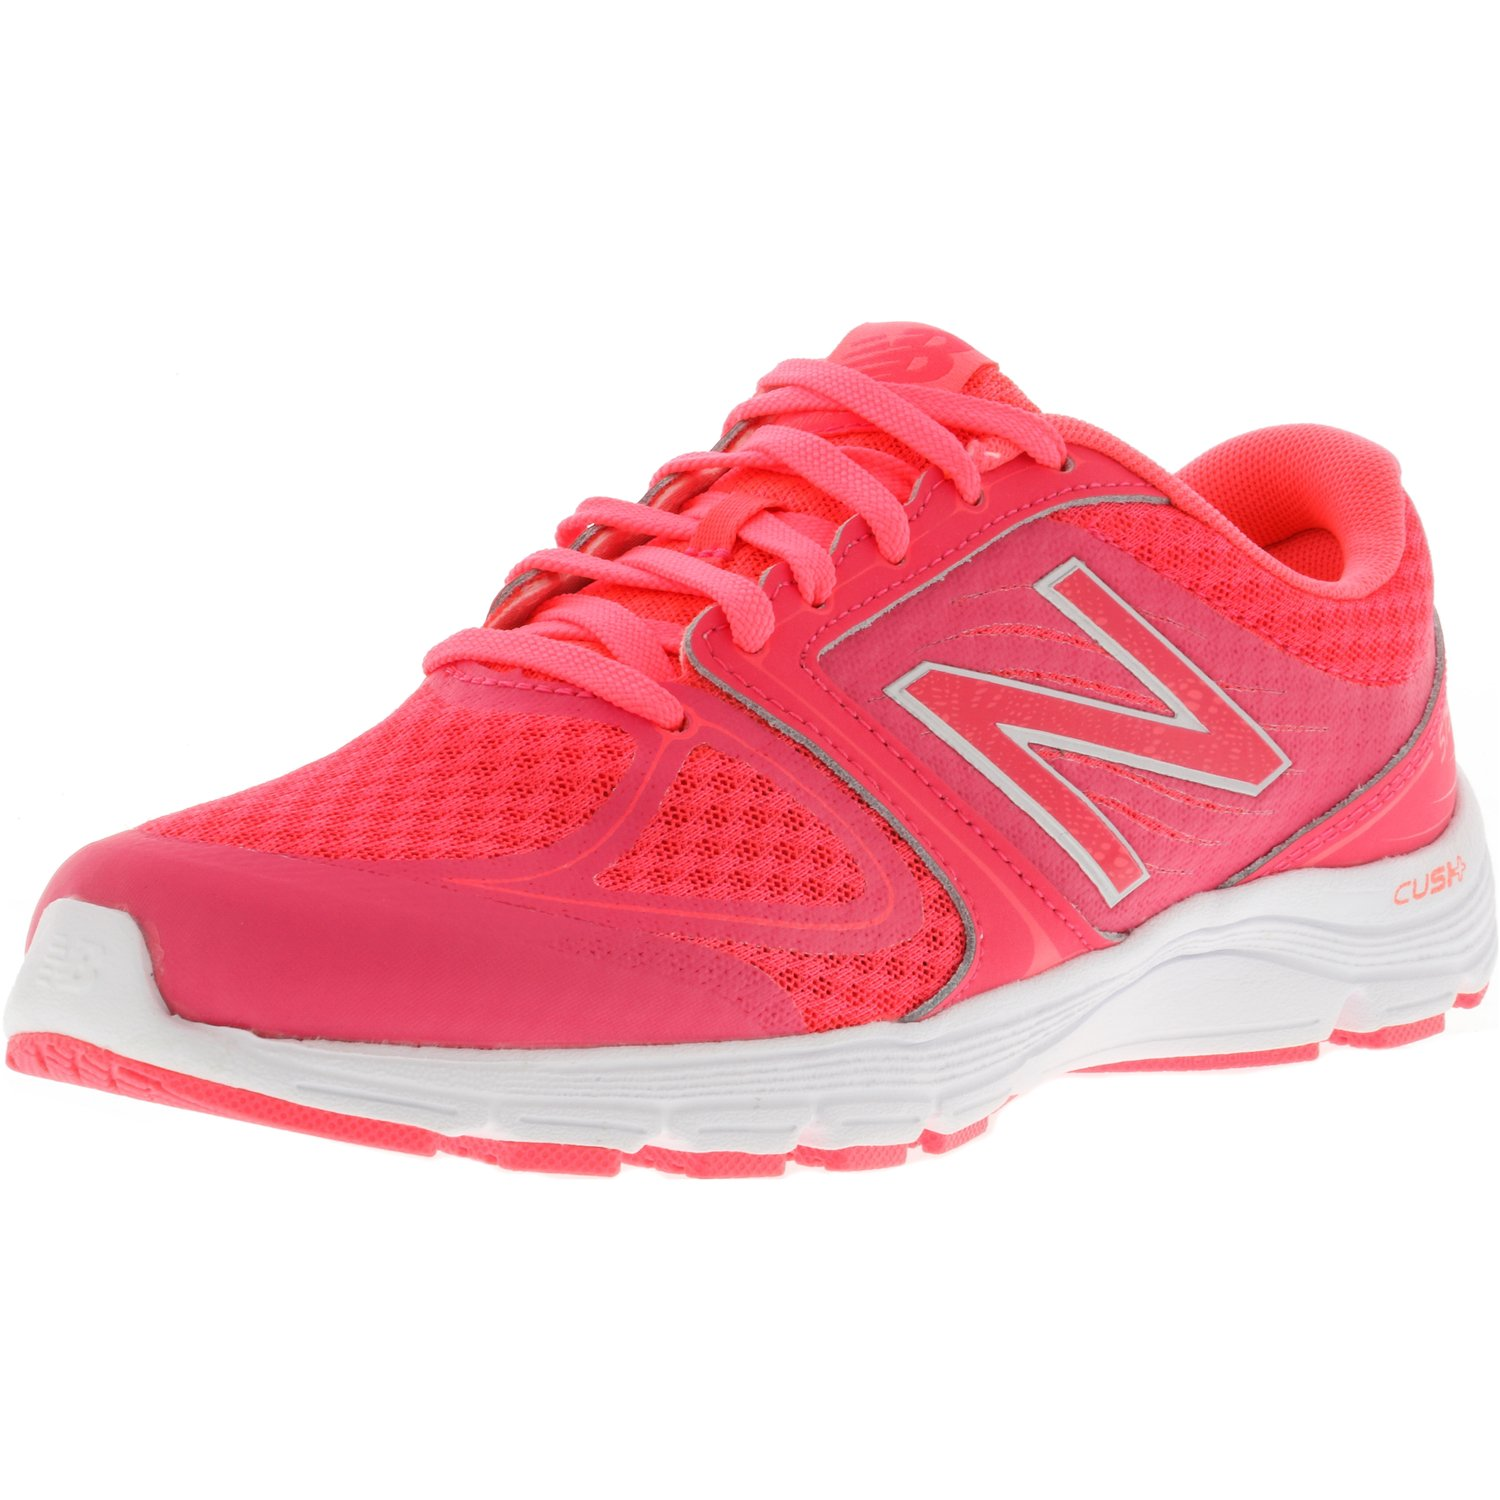 New Balance Women's W575 Lg2 Ankle-High Running Shoe 8M by New Balance